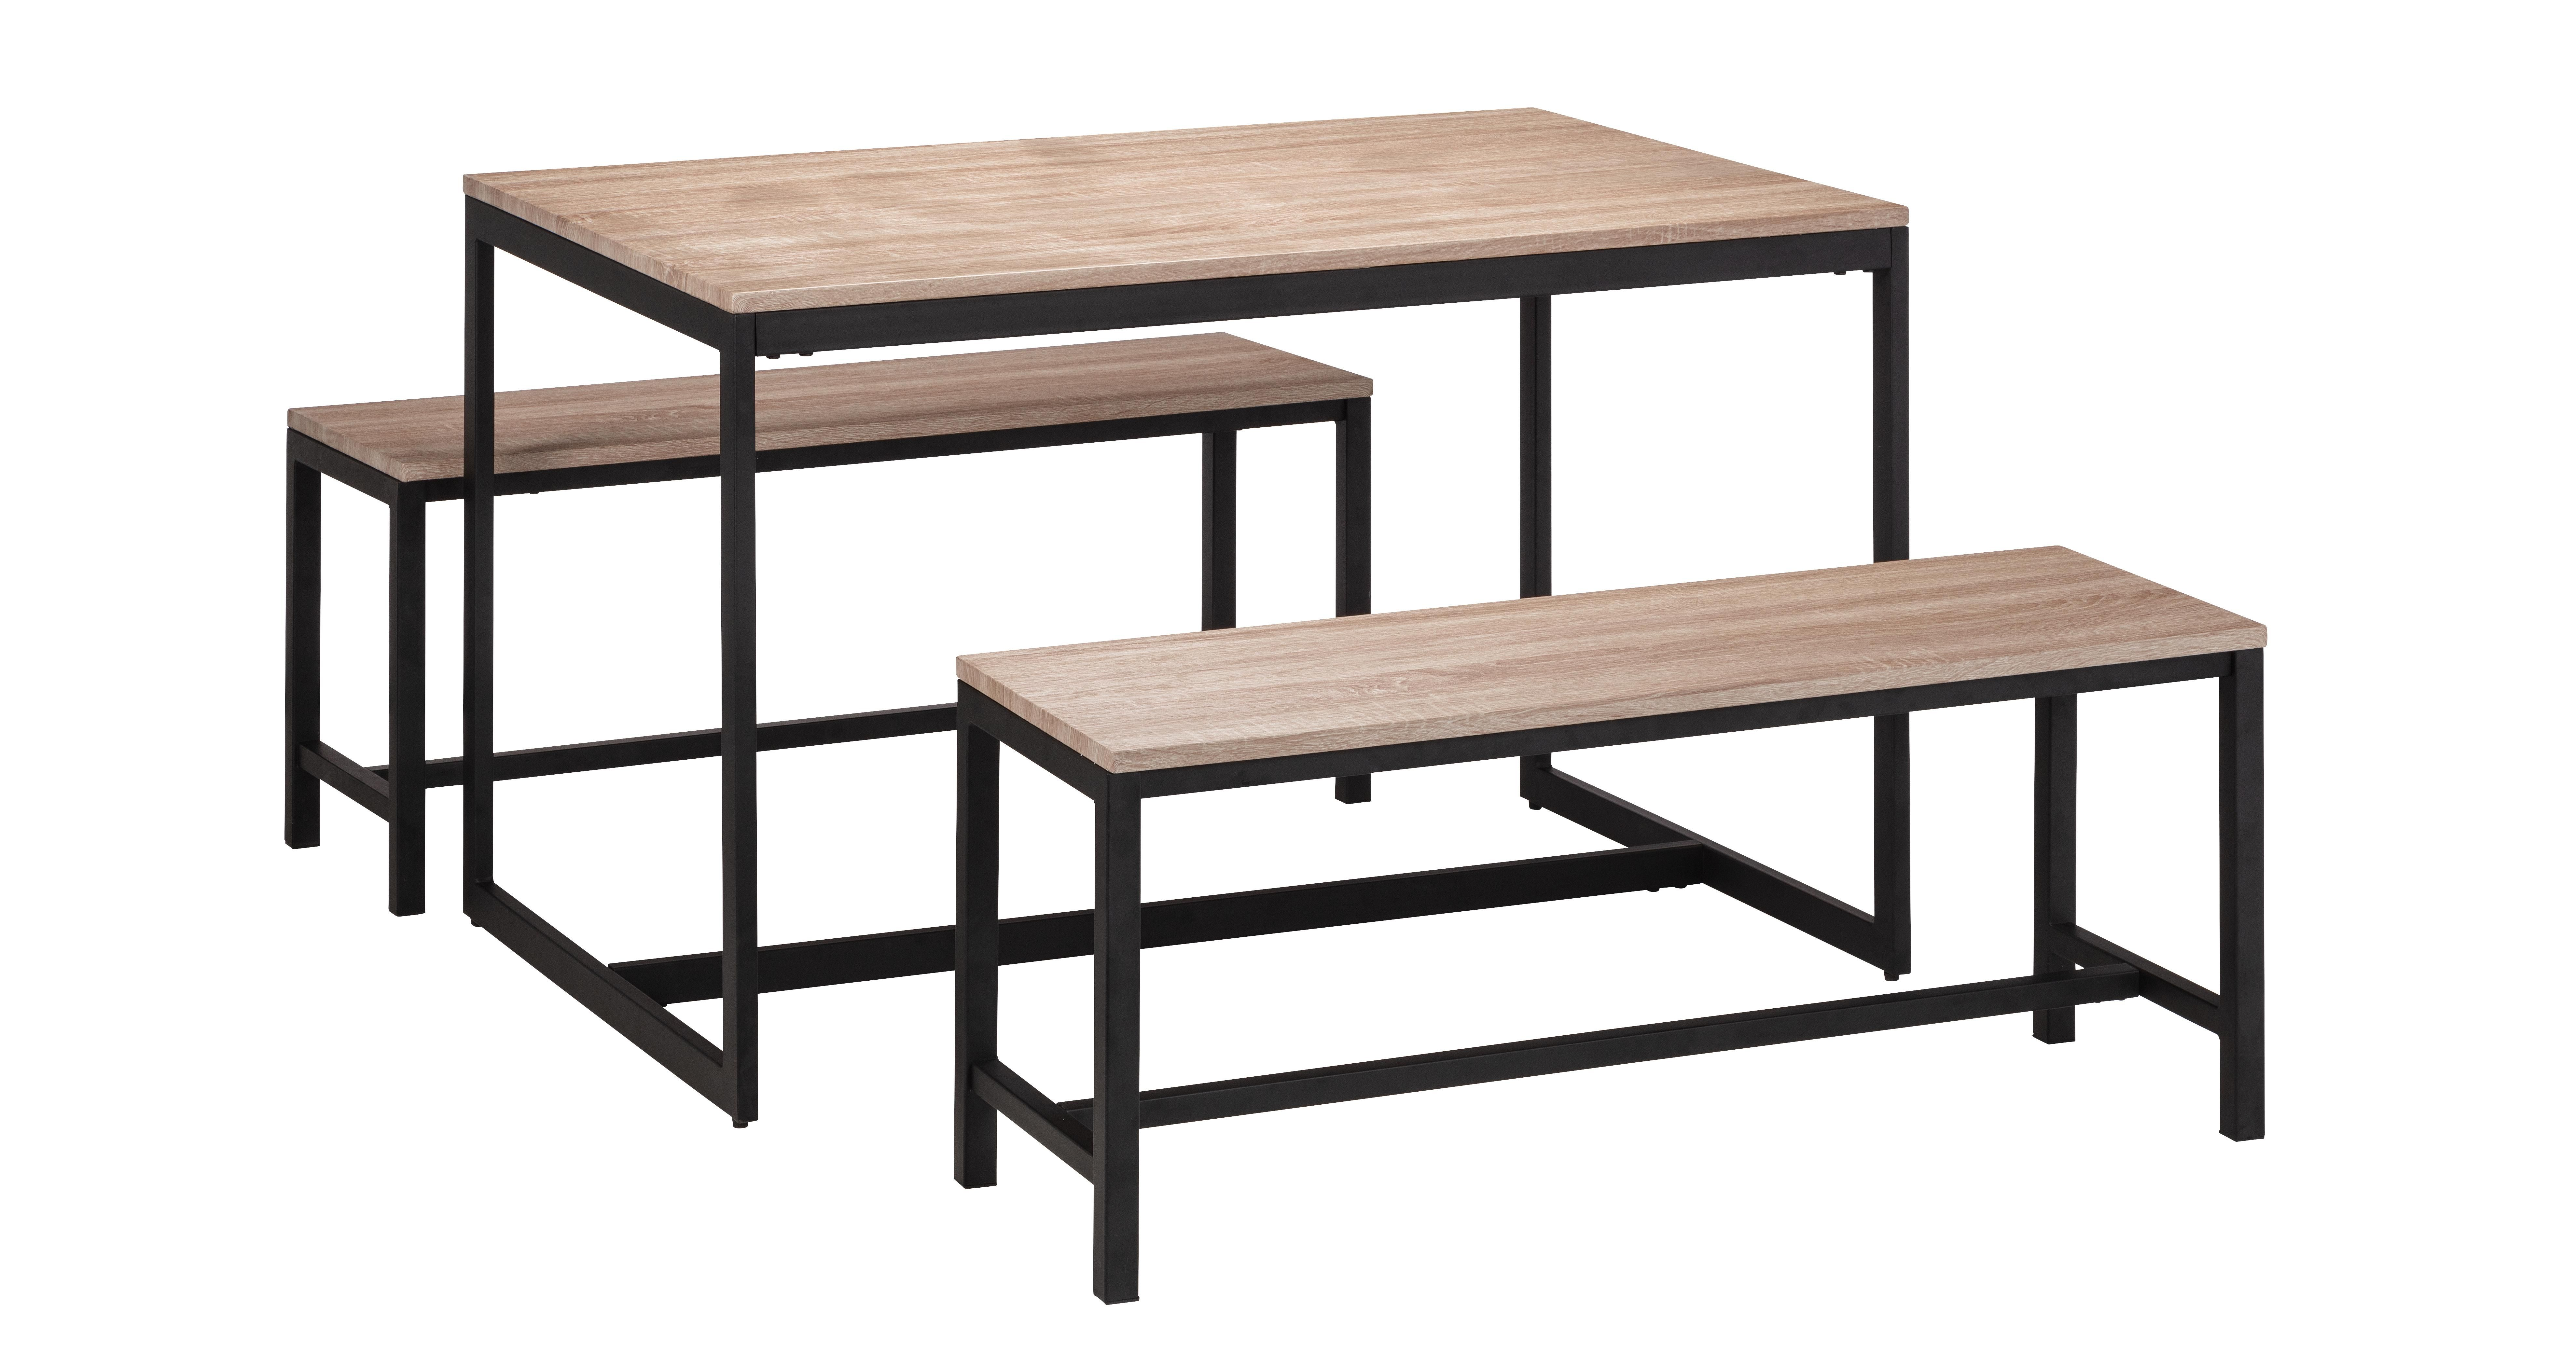 Corsica Fixed Top Table And 2 Benches Diy Dining Table Modern Dining Table Table [ 4200 x 7914 Pixel ]